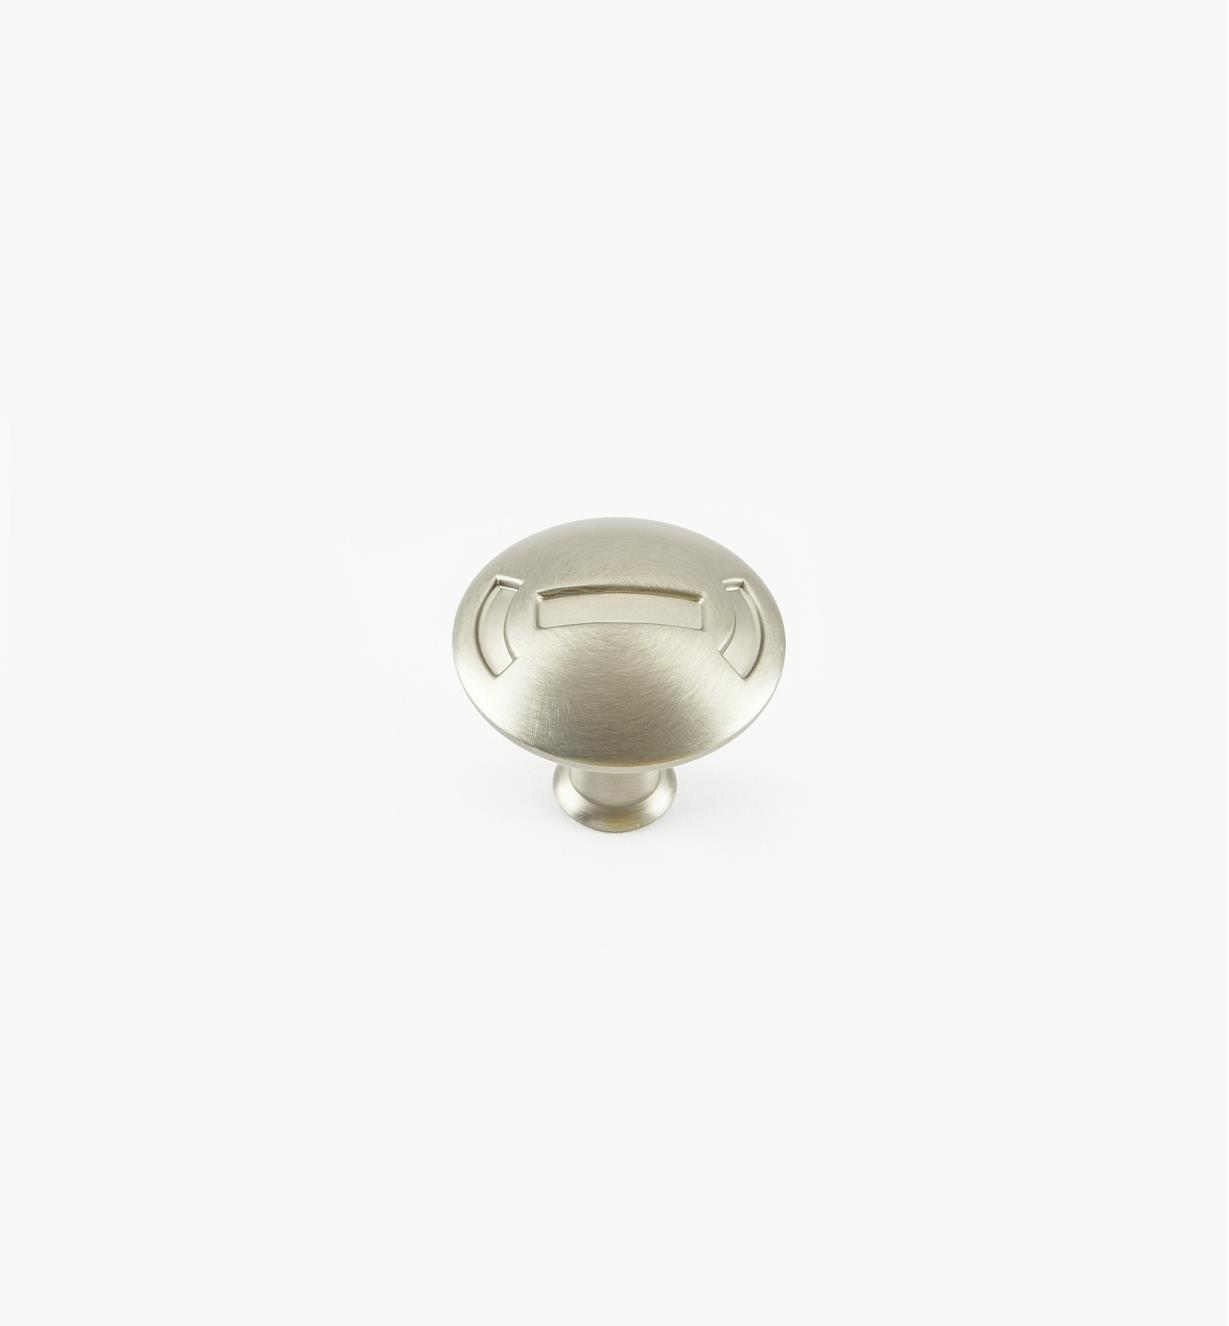 "02W1901 - 1 1/4"" x 1 1/8"" Satin Nickel Knob"